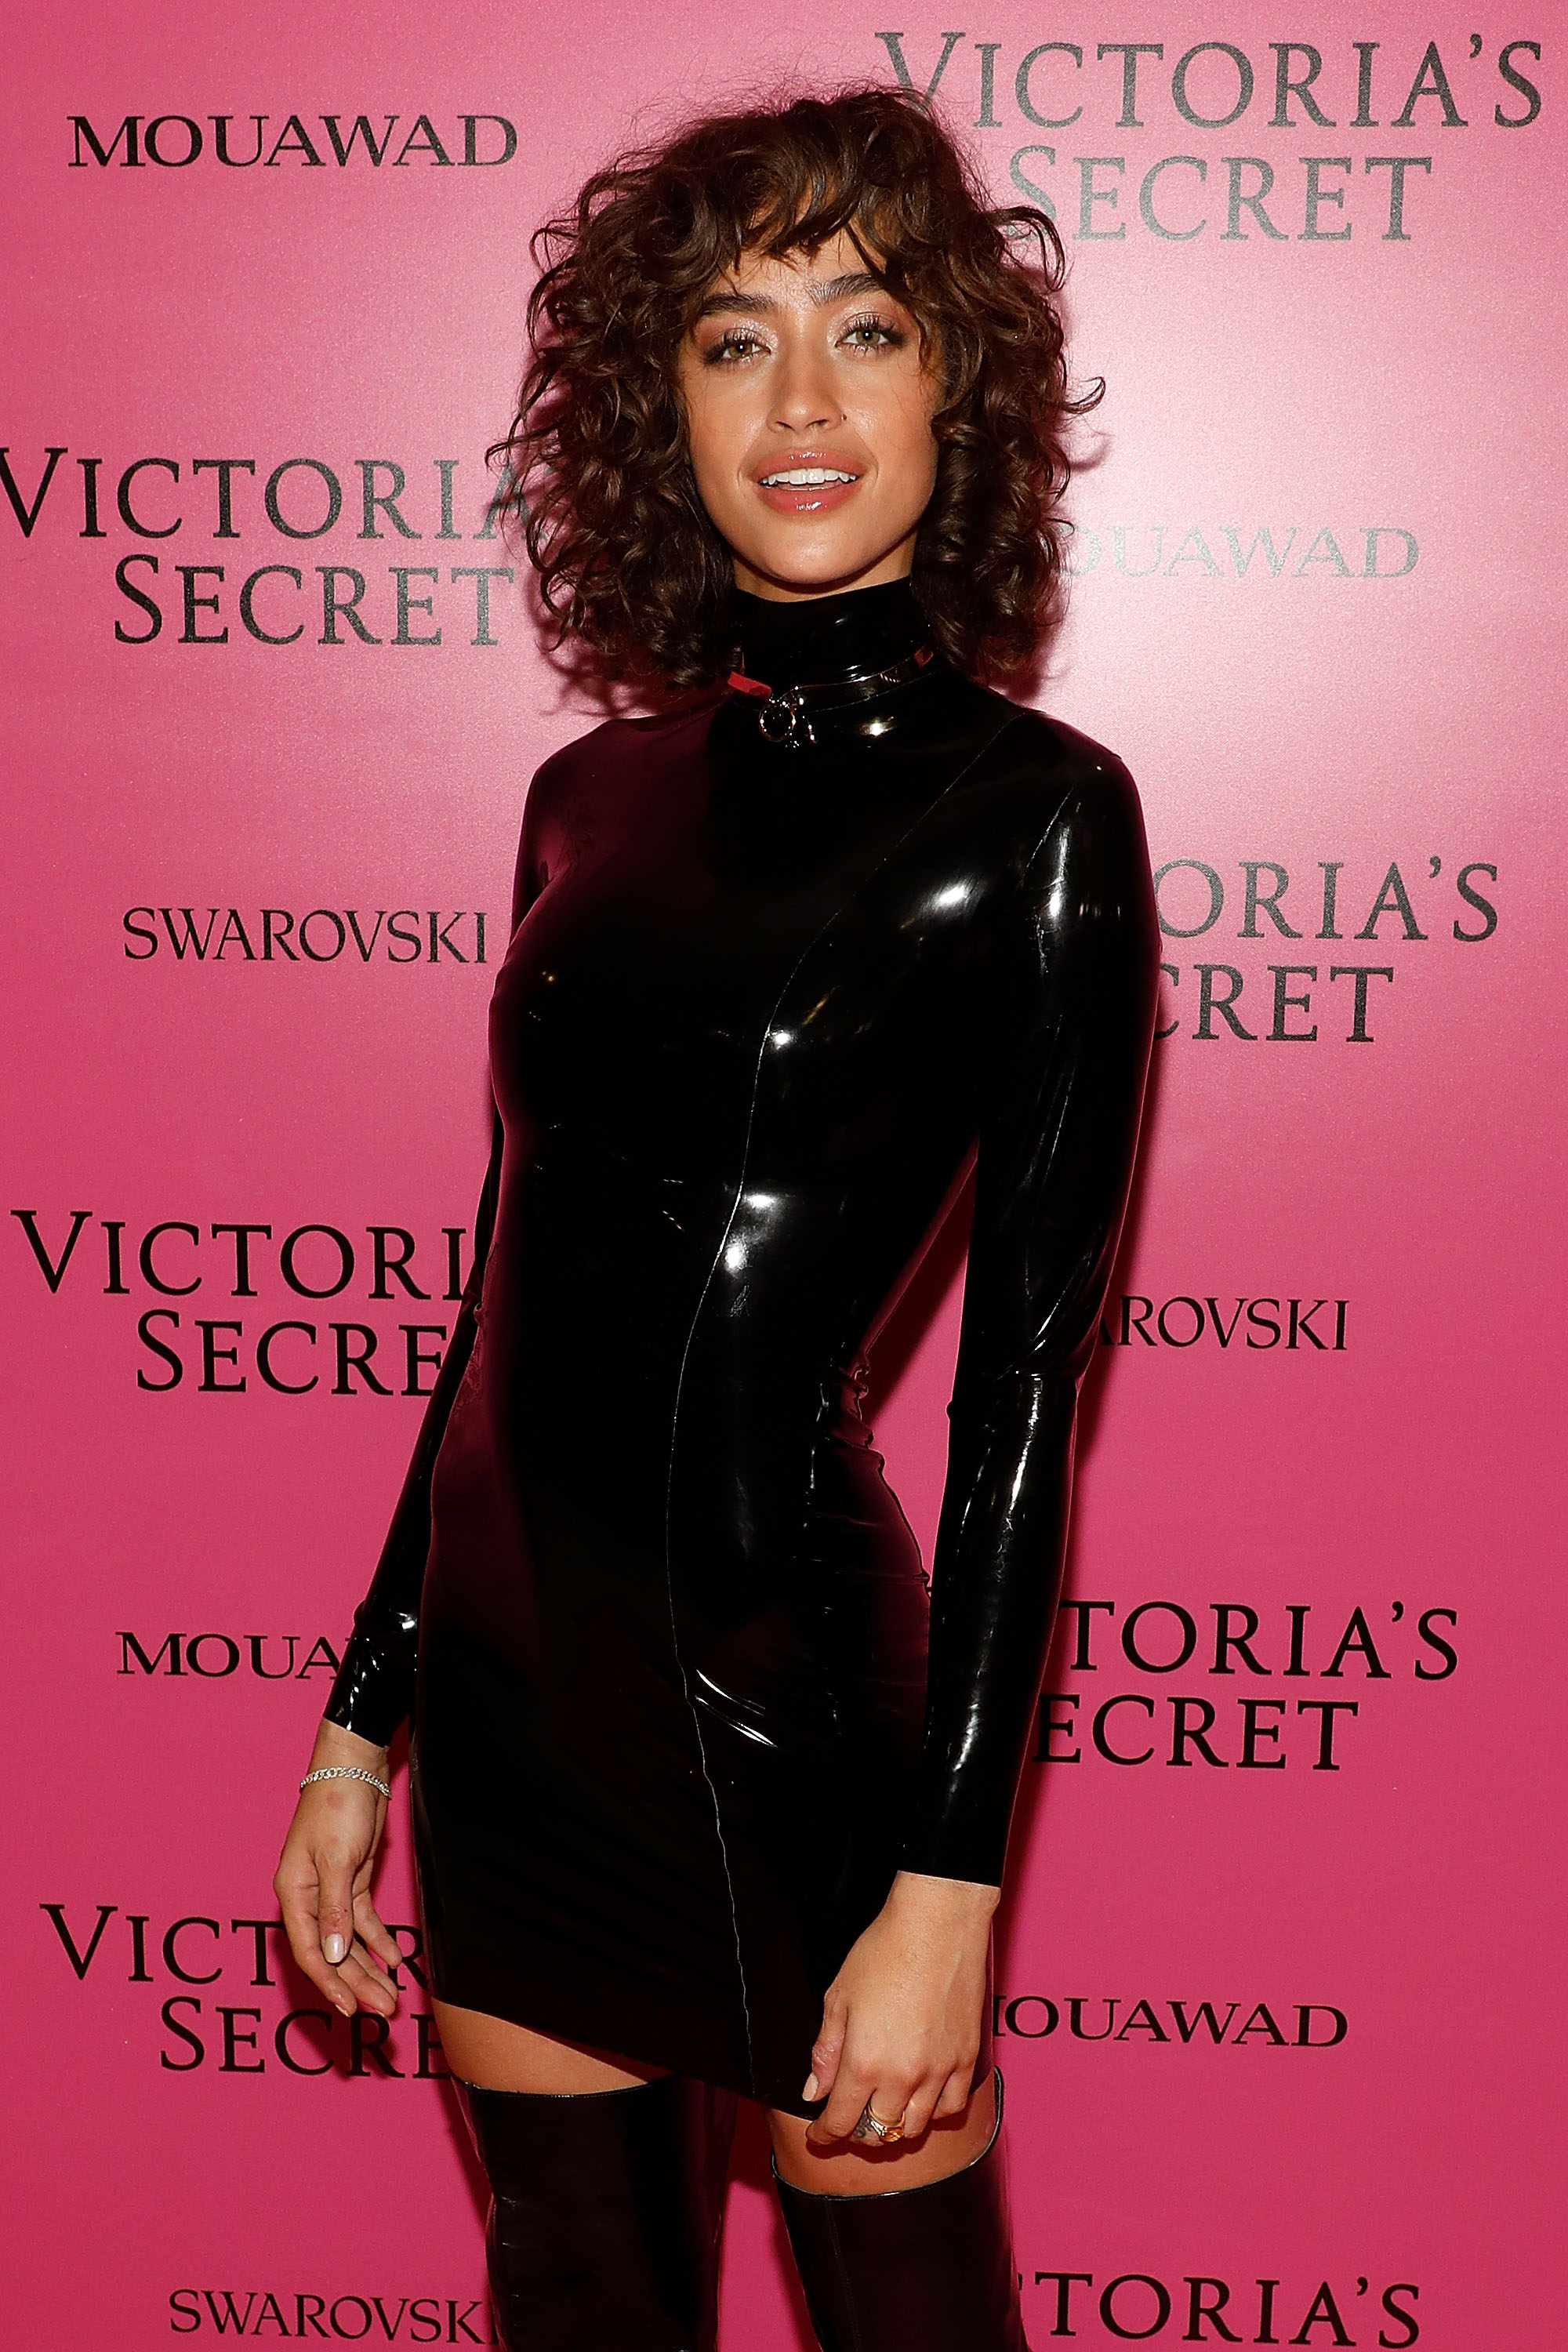 Alanna Arrington rocks a textured shag on the pink carpet during the Victoria's Secret Fashion Show.